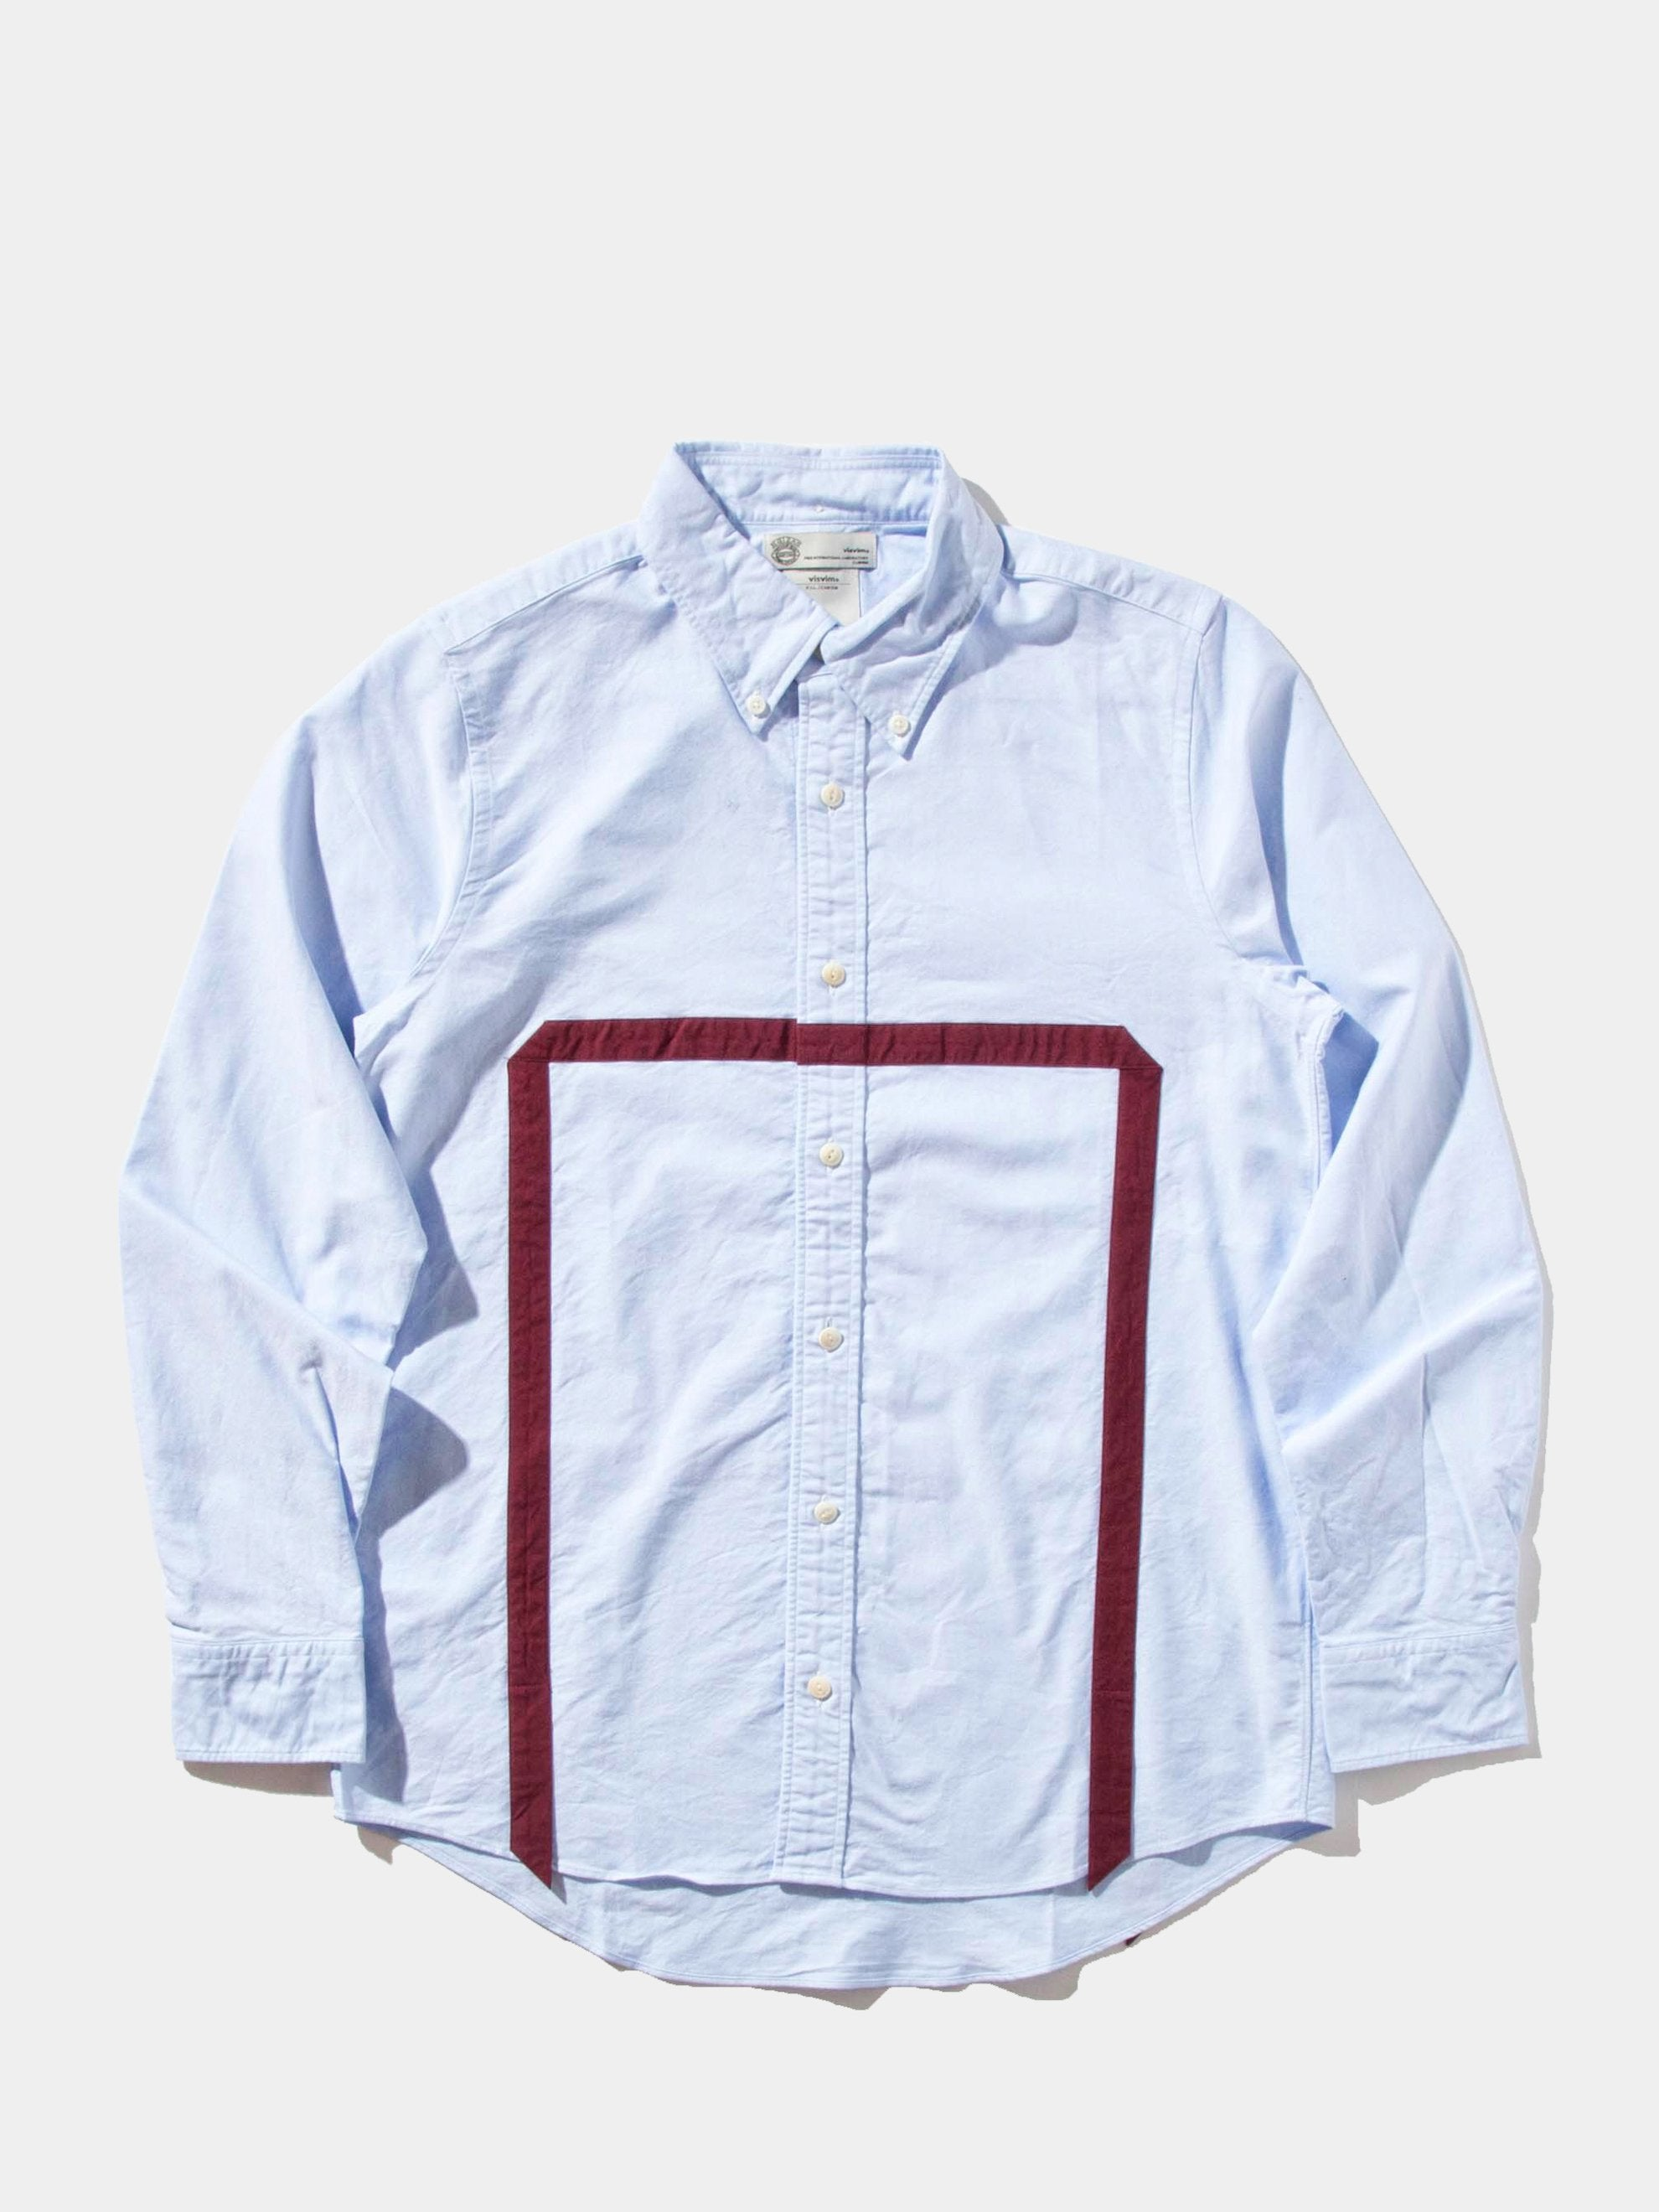 V+V 5-Nation Shirt L/S (Giza OX)